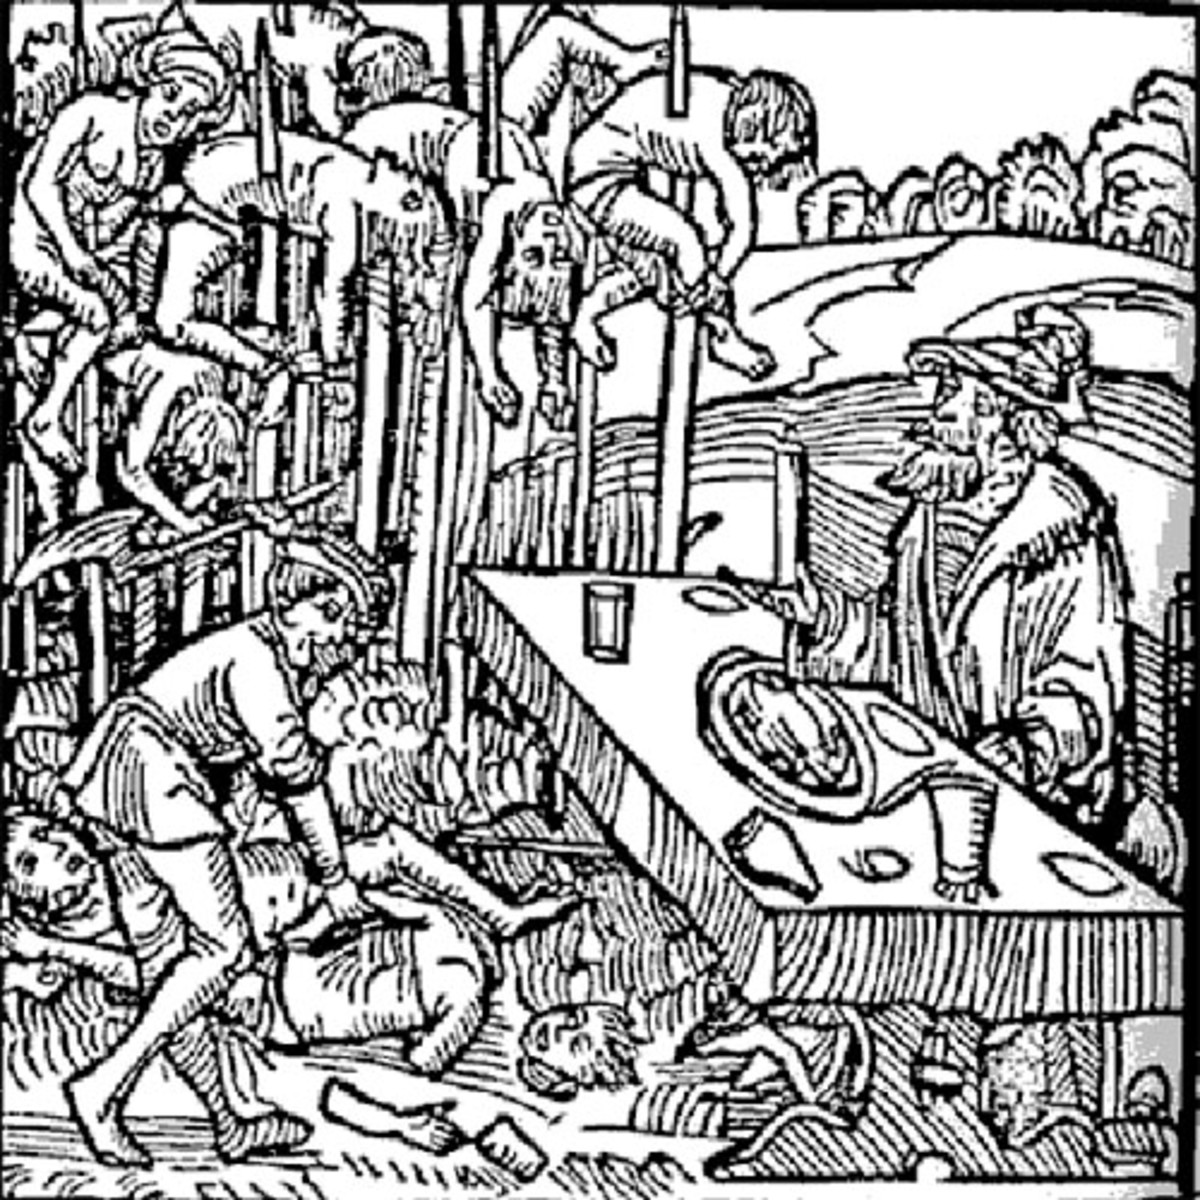 Woodcutting of the infamous 'Forest of the Impaled'